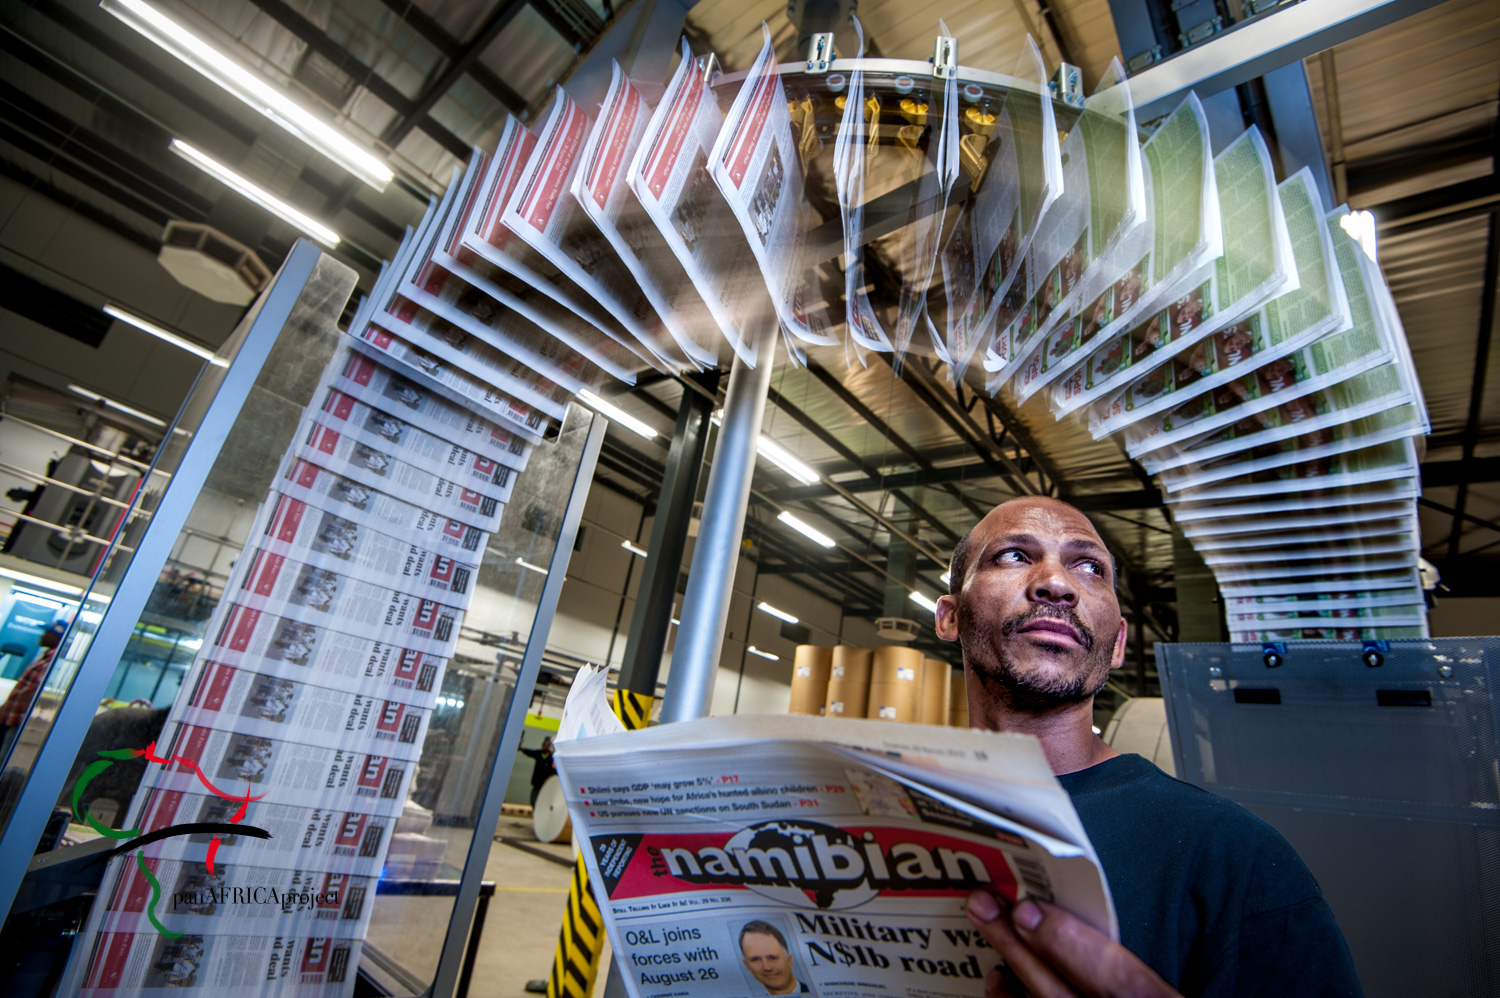 Newspapers running through a printing press while a worker reads one.